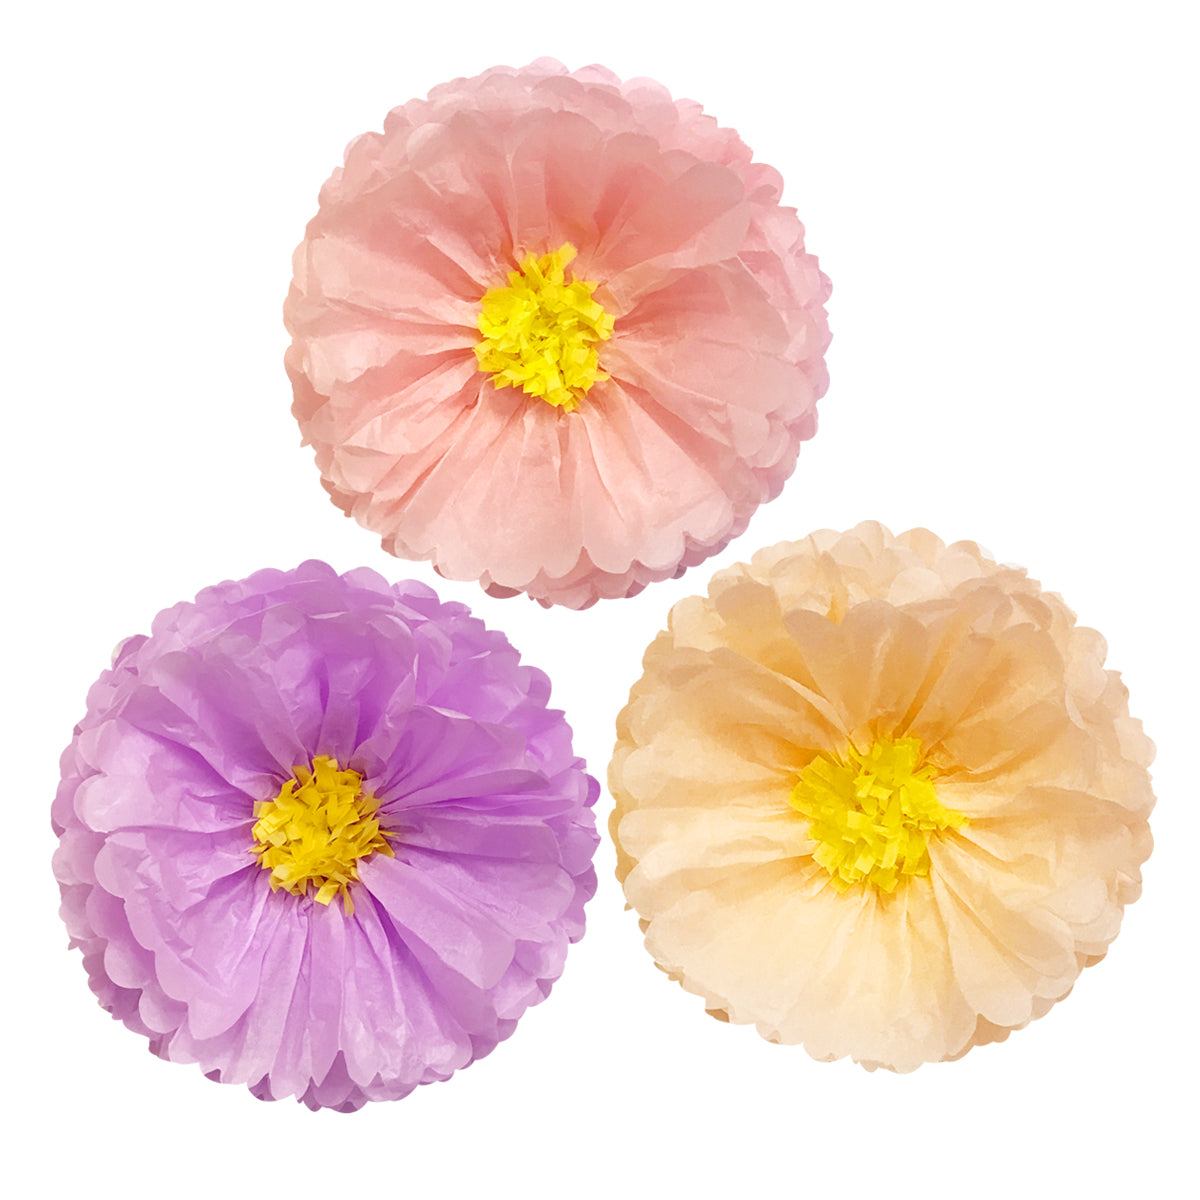 Wrapables Set of 3 Tissue Flower Pom Poms Party Decorations for Weddings, Birthday Parties Baby Showers and Nursery Decor